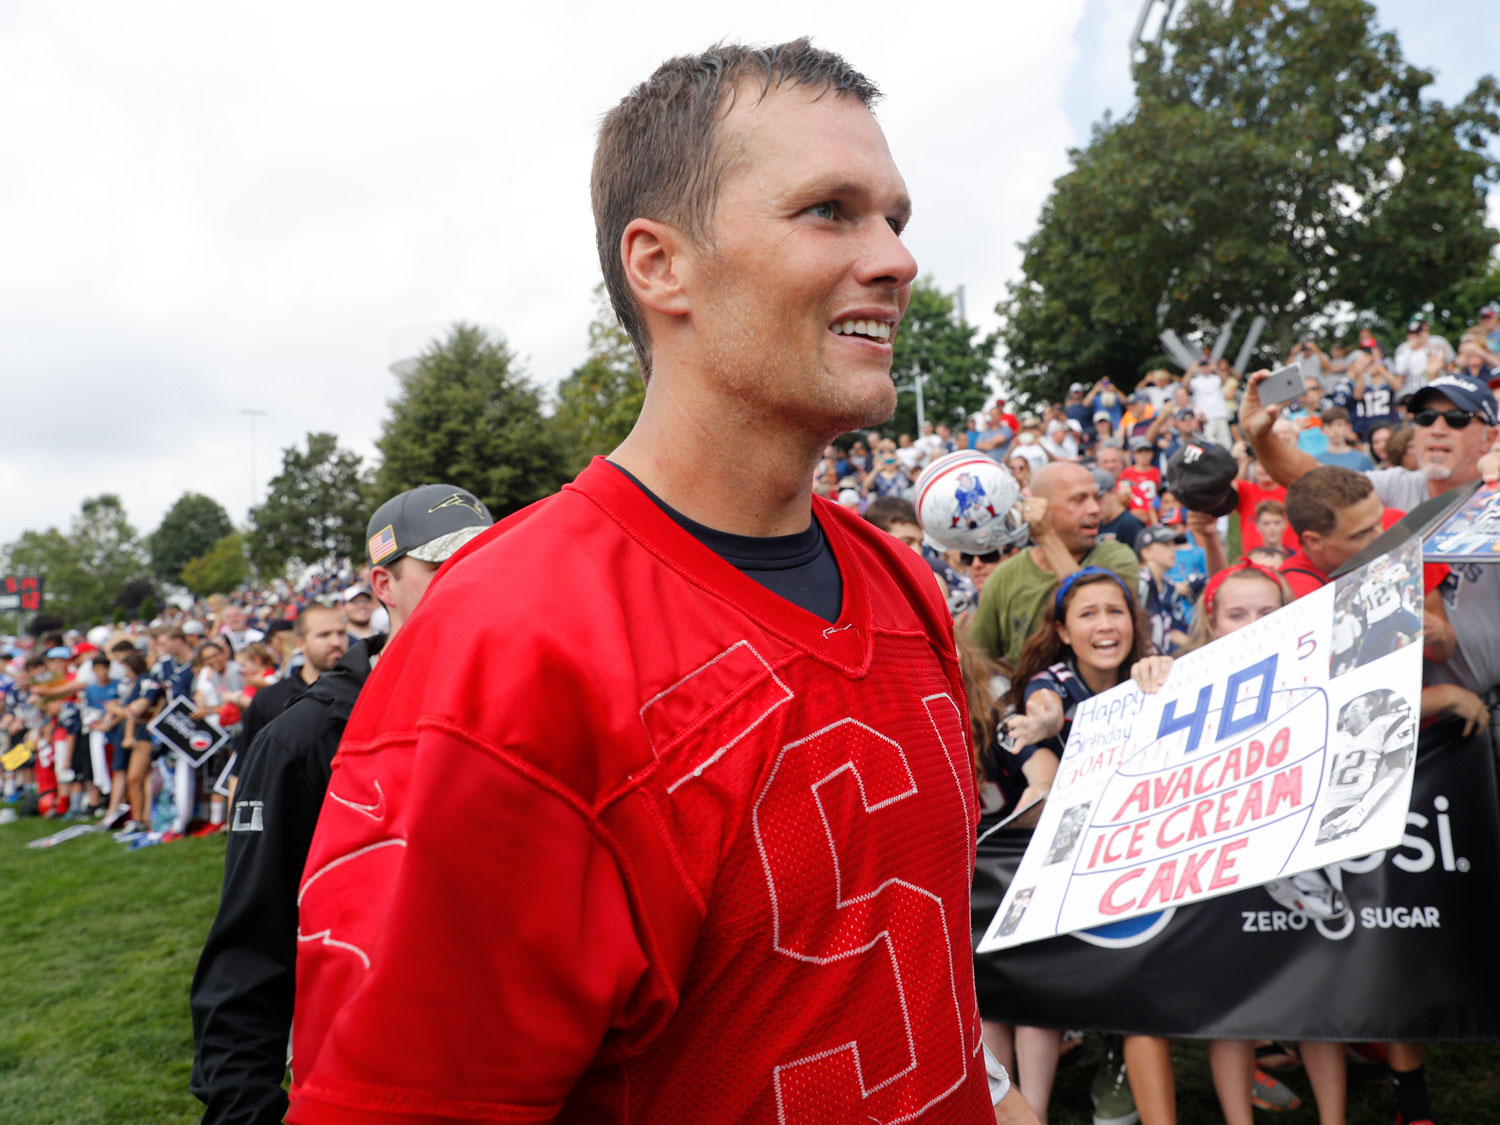 tom-brady-beer-chugging-FT-BLOG0817.jpg